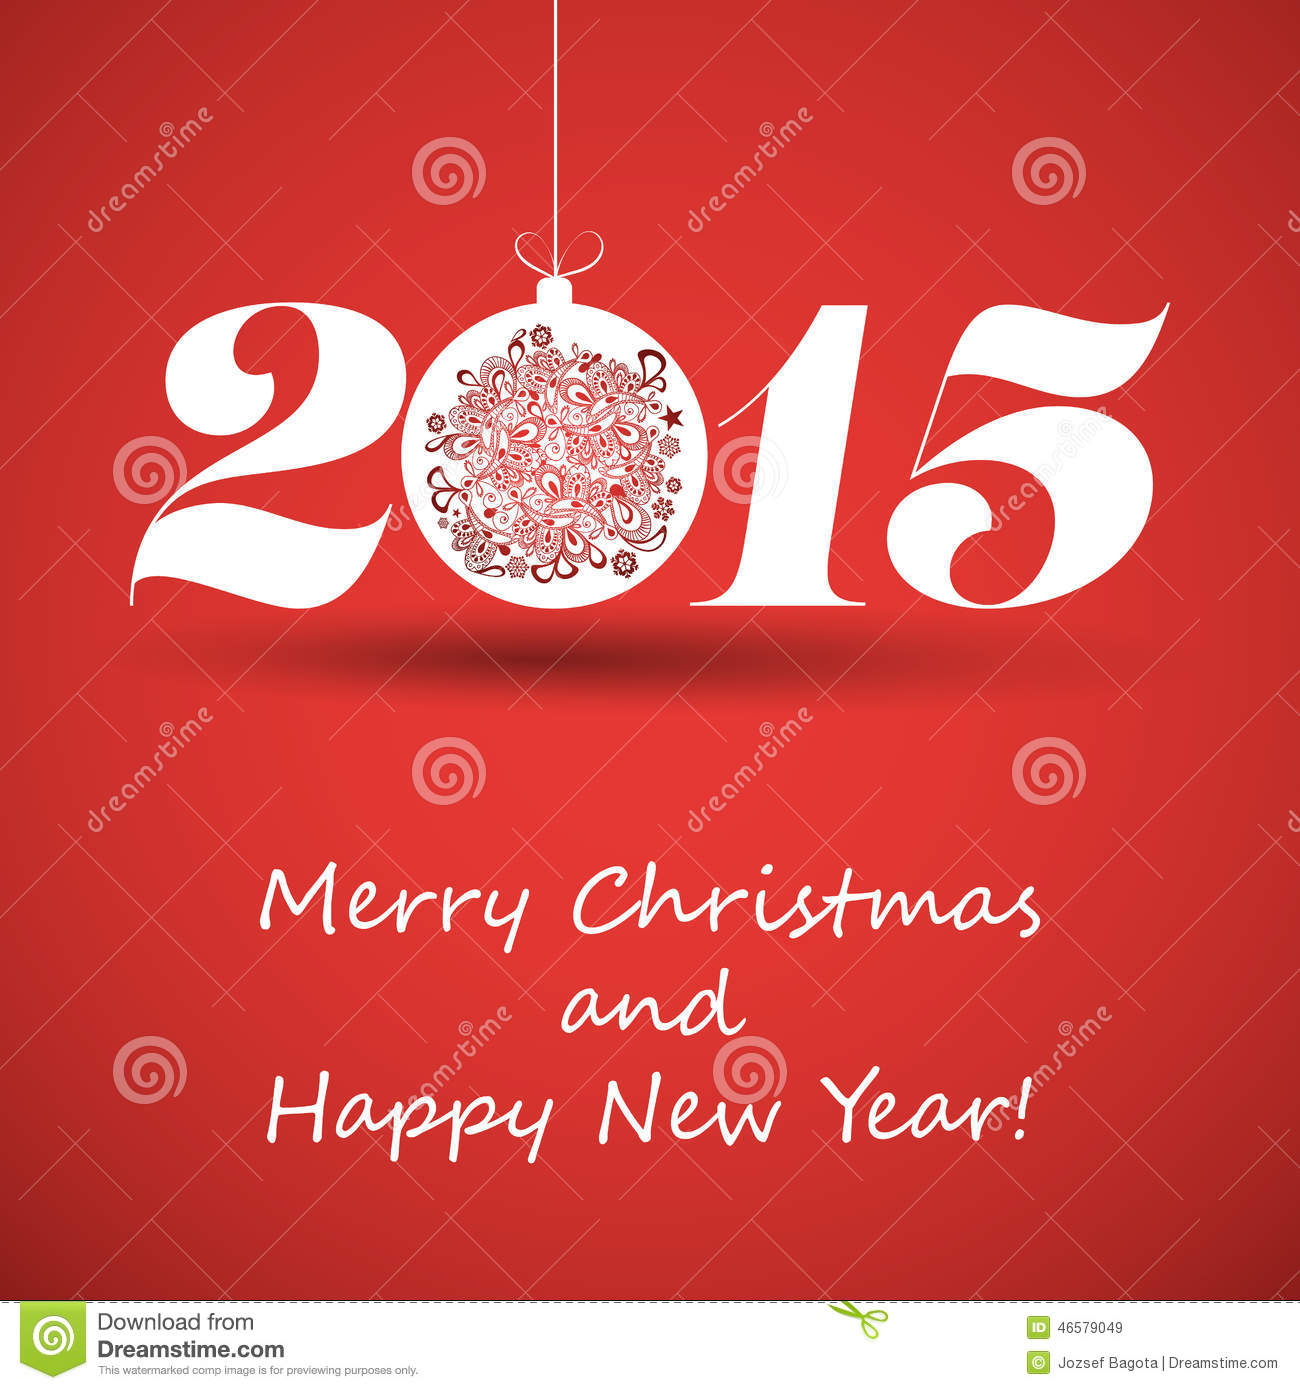 Merry christmas and happy new year greeting card 2015 stock vector merry christmas and happy new year greeting card 2015 kristyandbryce Image collections